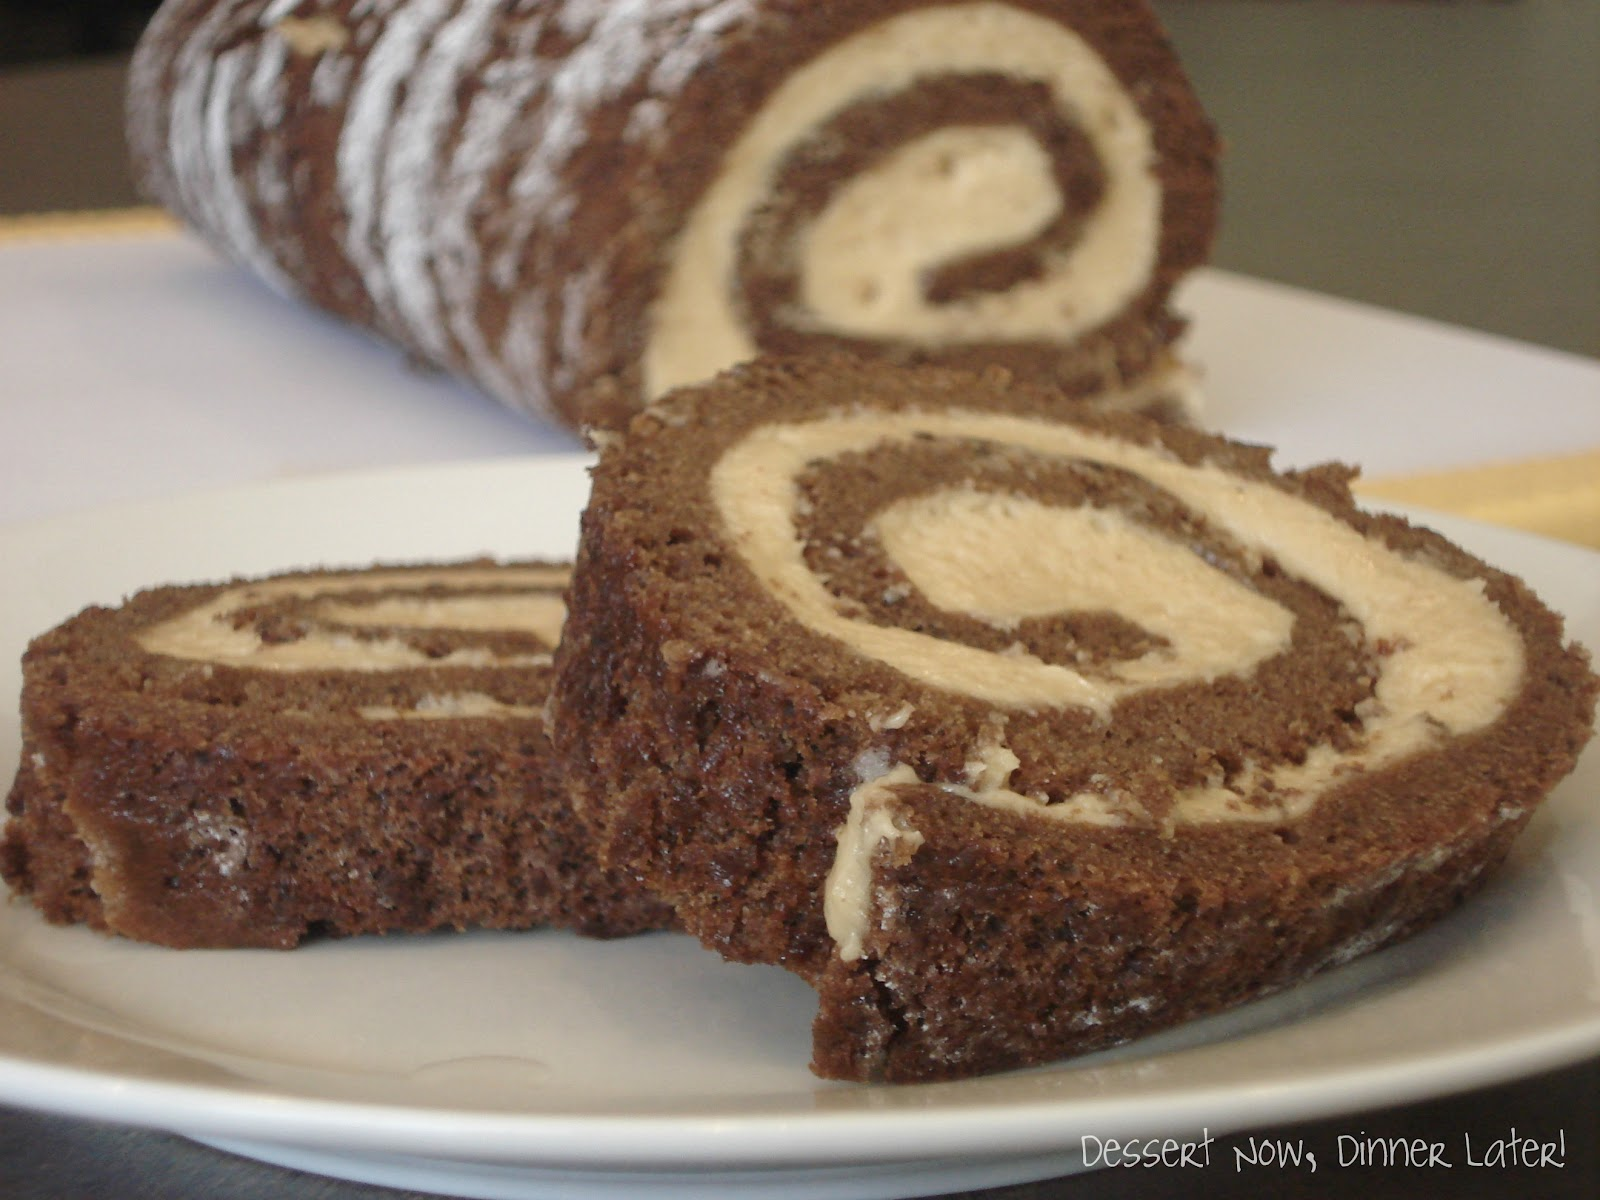 ... , Dinner Later!: Chocolate Roulade with Whipped Peanut Butter Filling